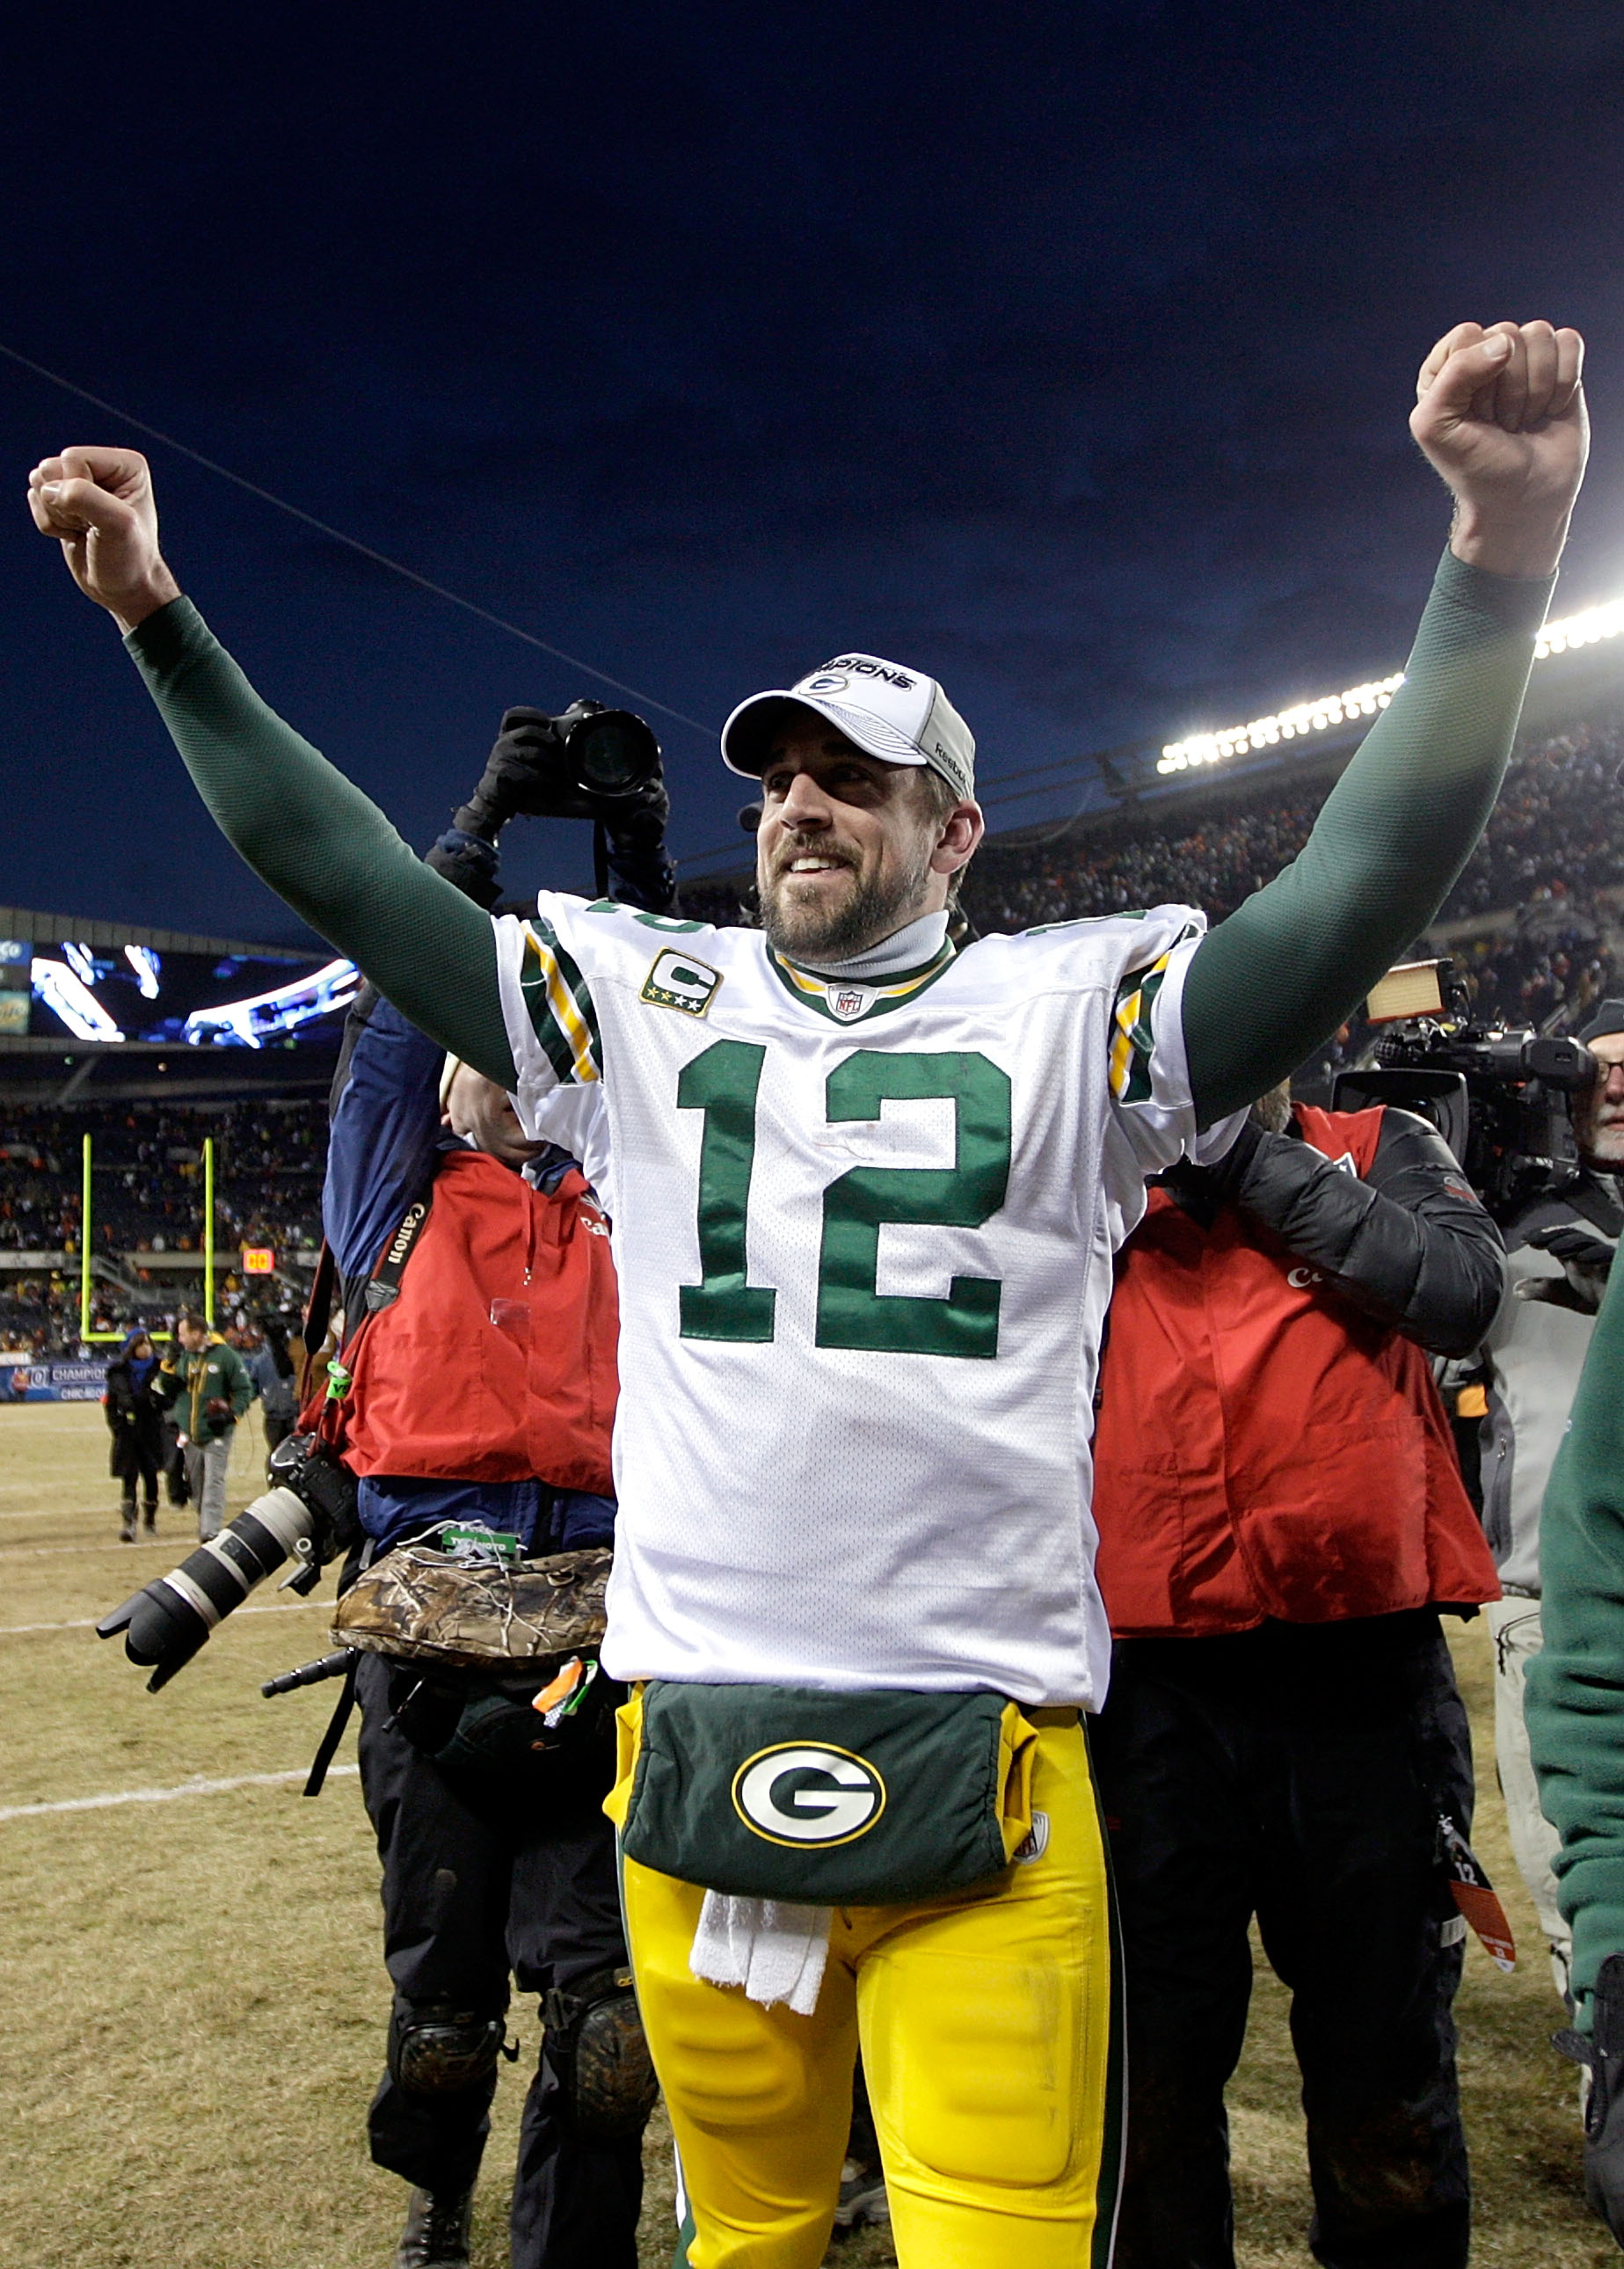 CHICAGO, IL - JANUARY 23:  Quarterback Aaron Rodgers #12 of the Green Bay Packers celebrates the Packers 21-14 victory against the Chicago Bears in the NFC Championship Game at Soldier Field on January 23, 2011 in Chicago, Illinois.  (Photo by Jamie Squir